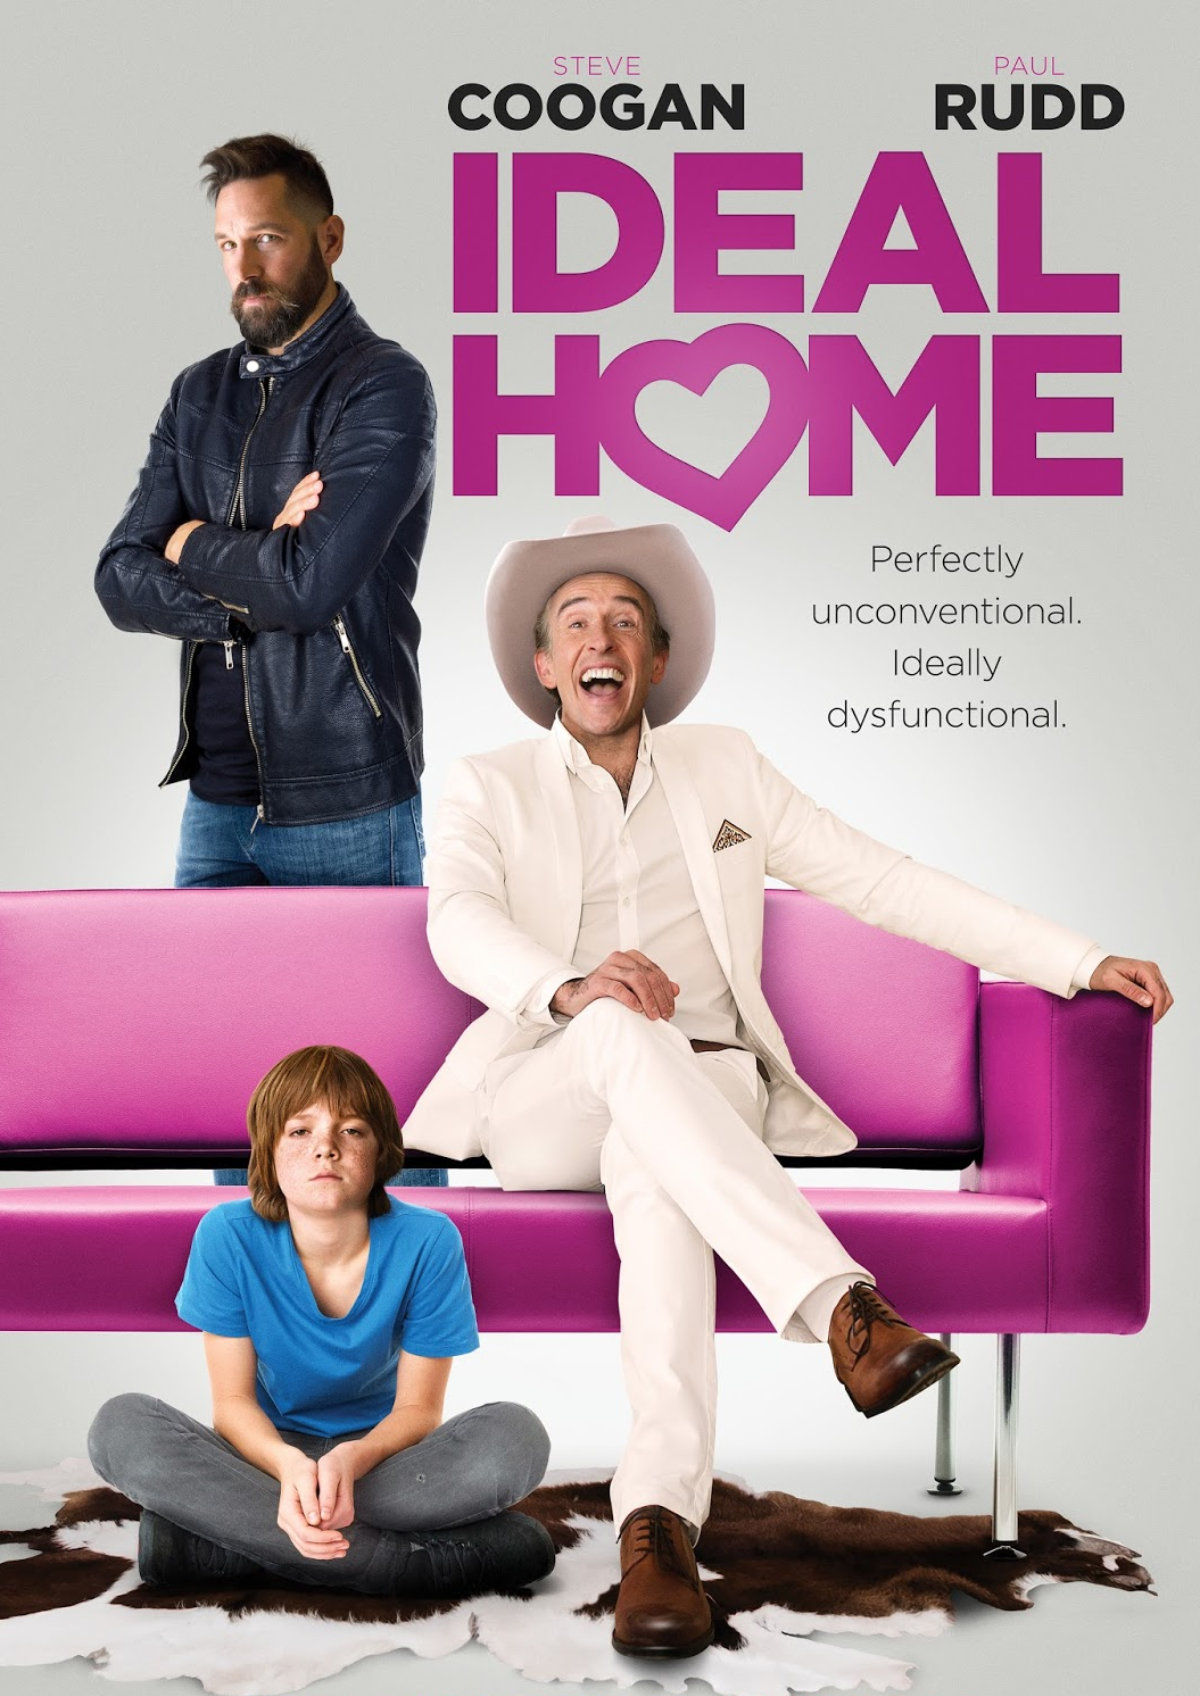 'Ideal Home' movie poster